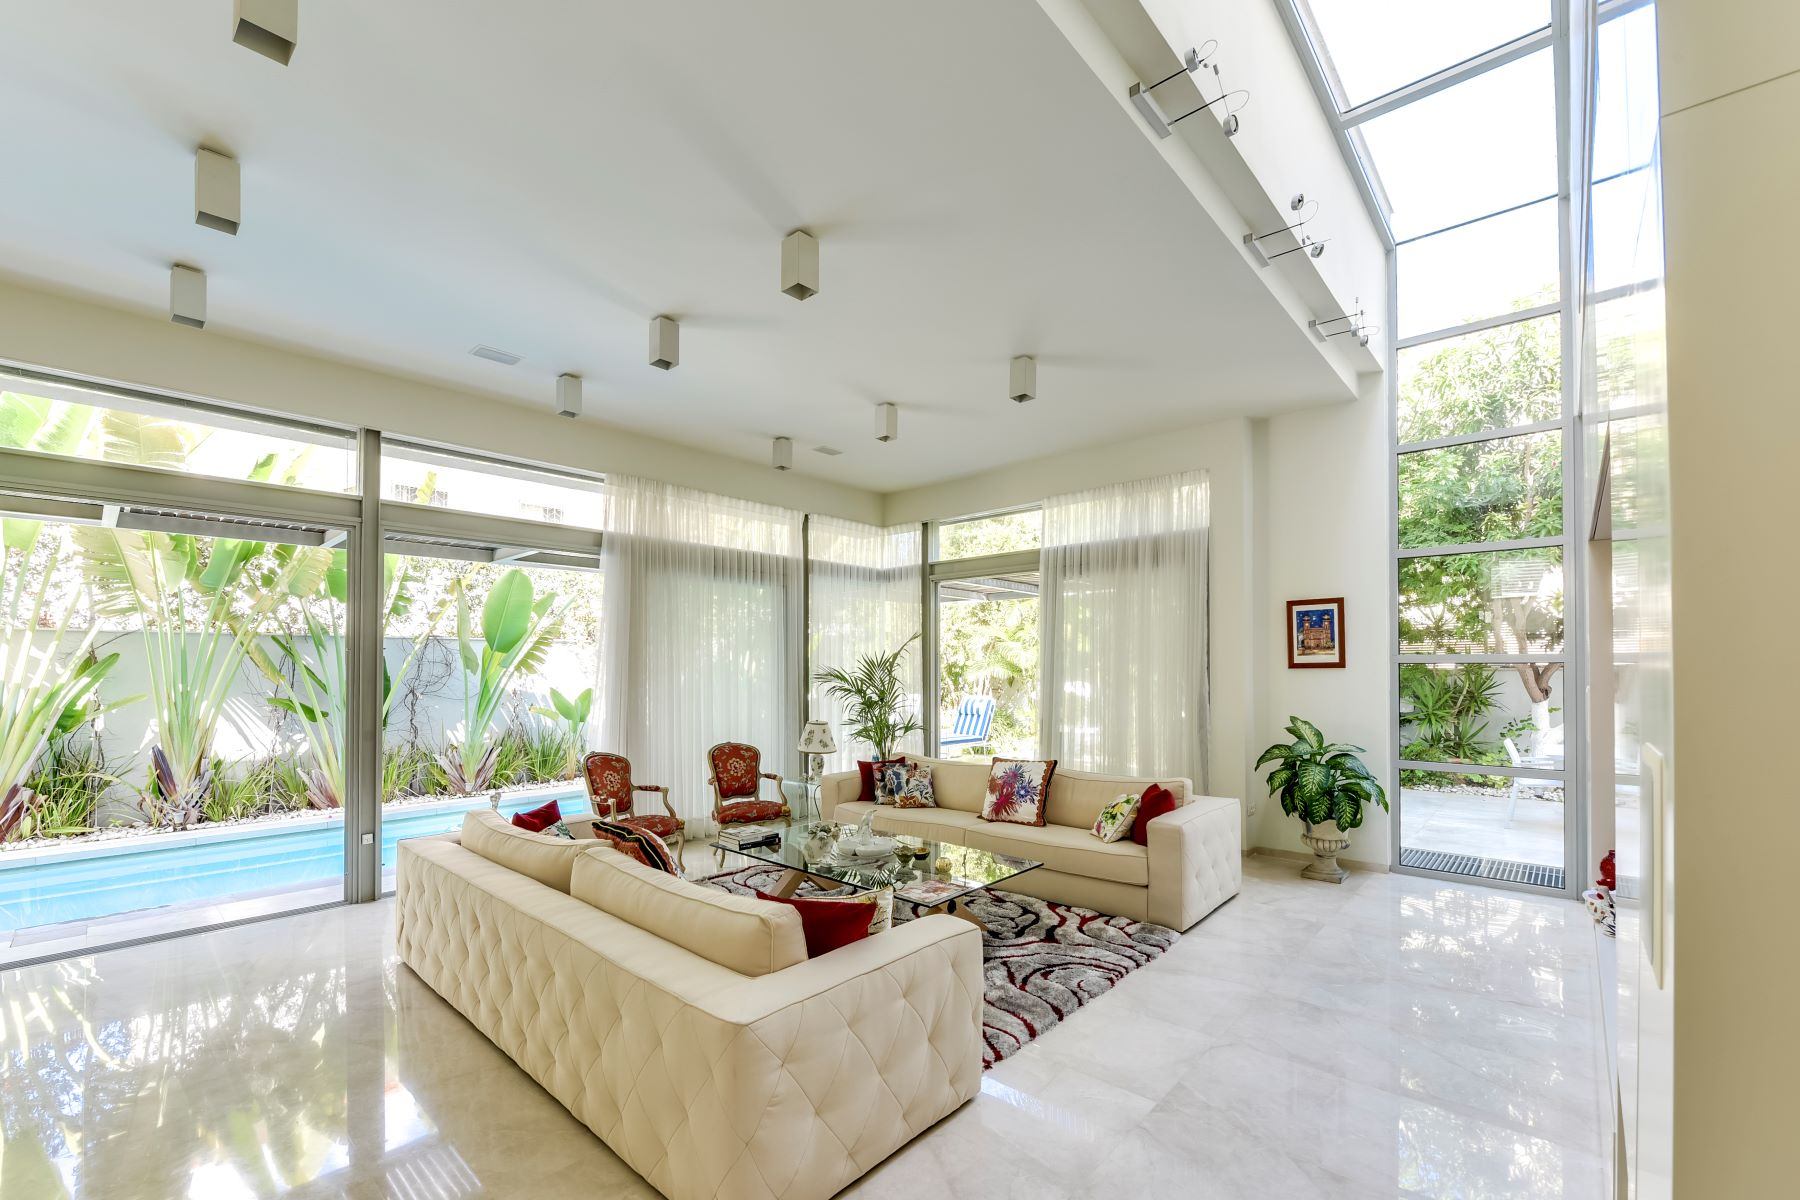 Single Family Home for Sale at A Marvelous Elegant Villa In The Heart Of Herzlyia Pituach. Herzliya, Israel Israel